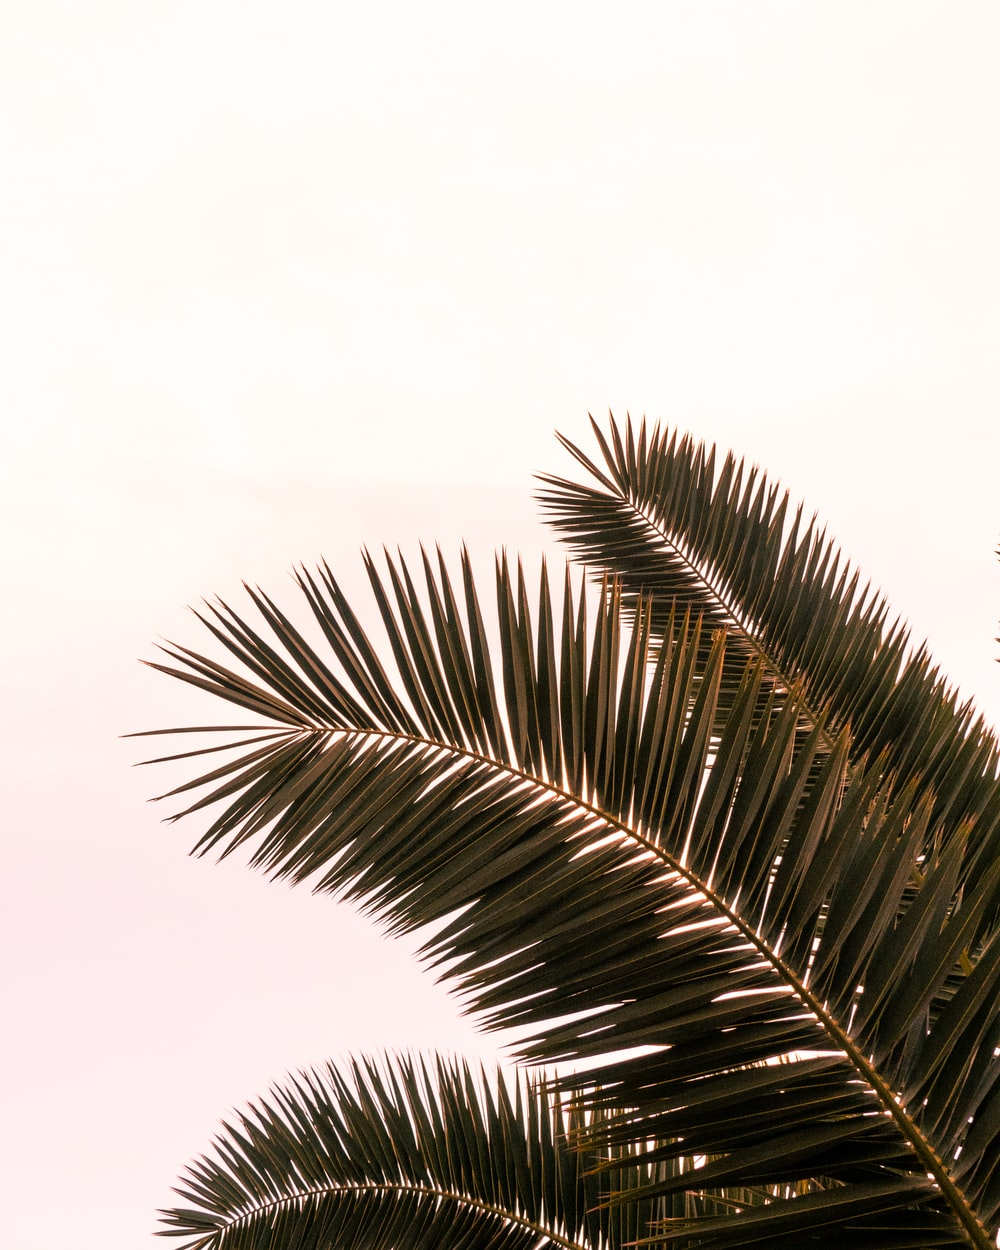 green coconut palm fronds